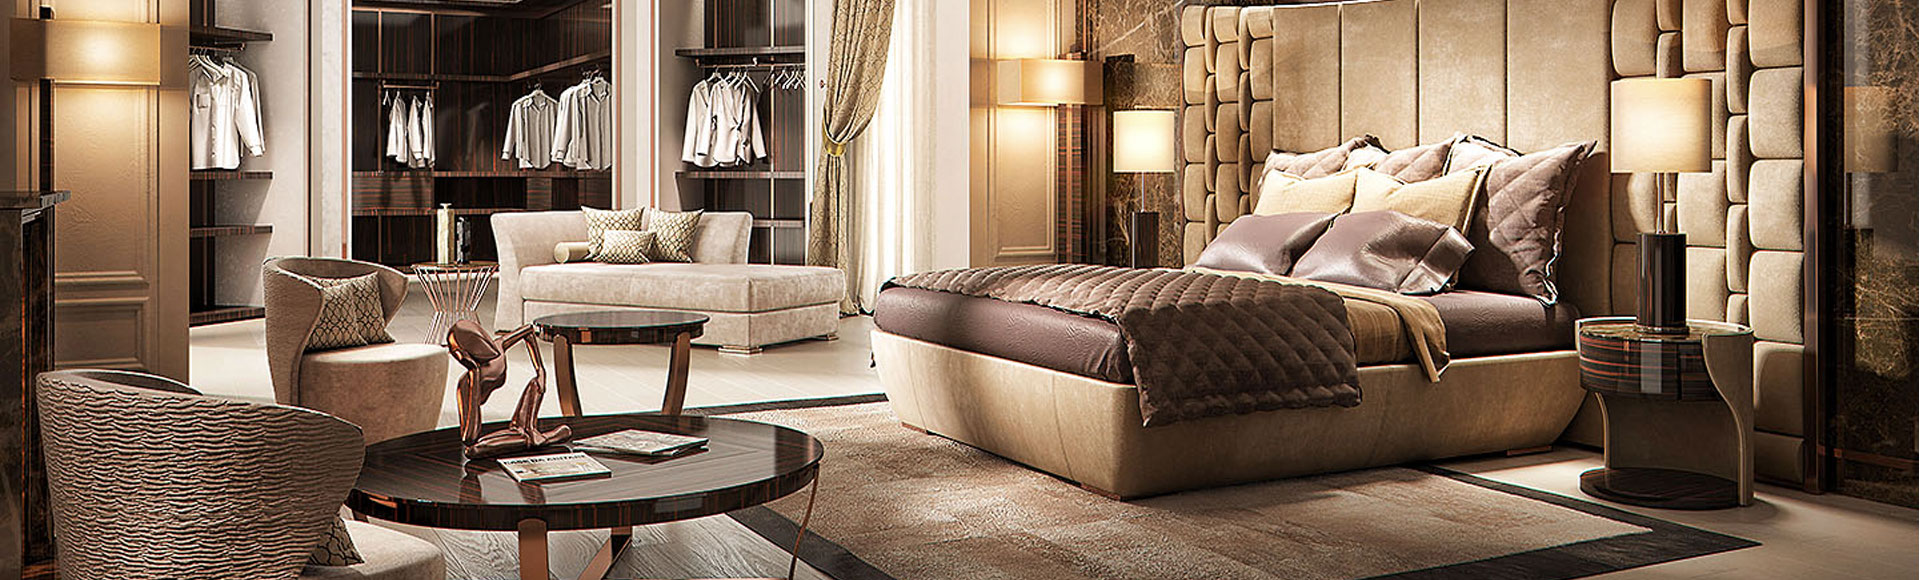 Italian Leather Bed at IDUS Furniture Store